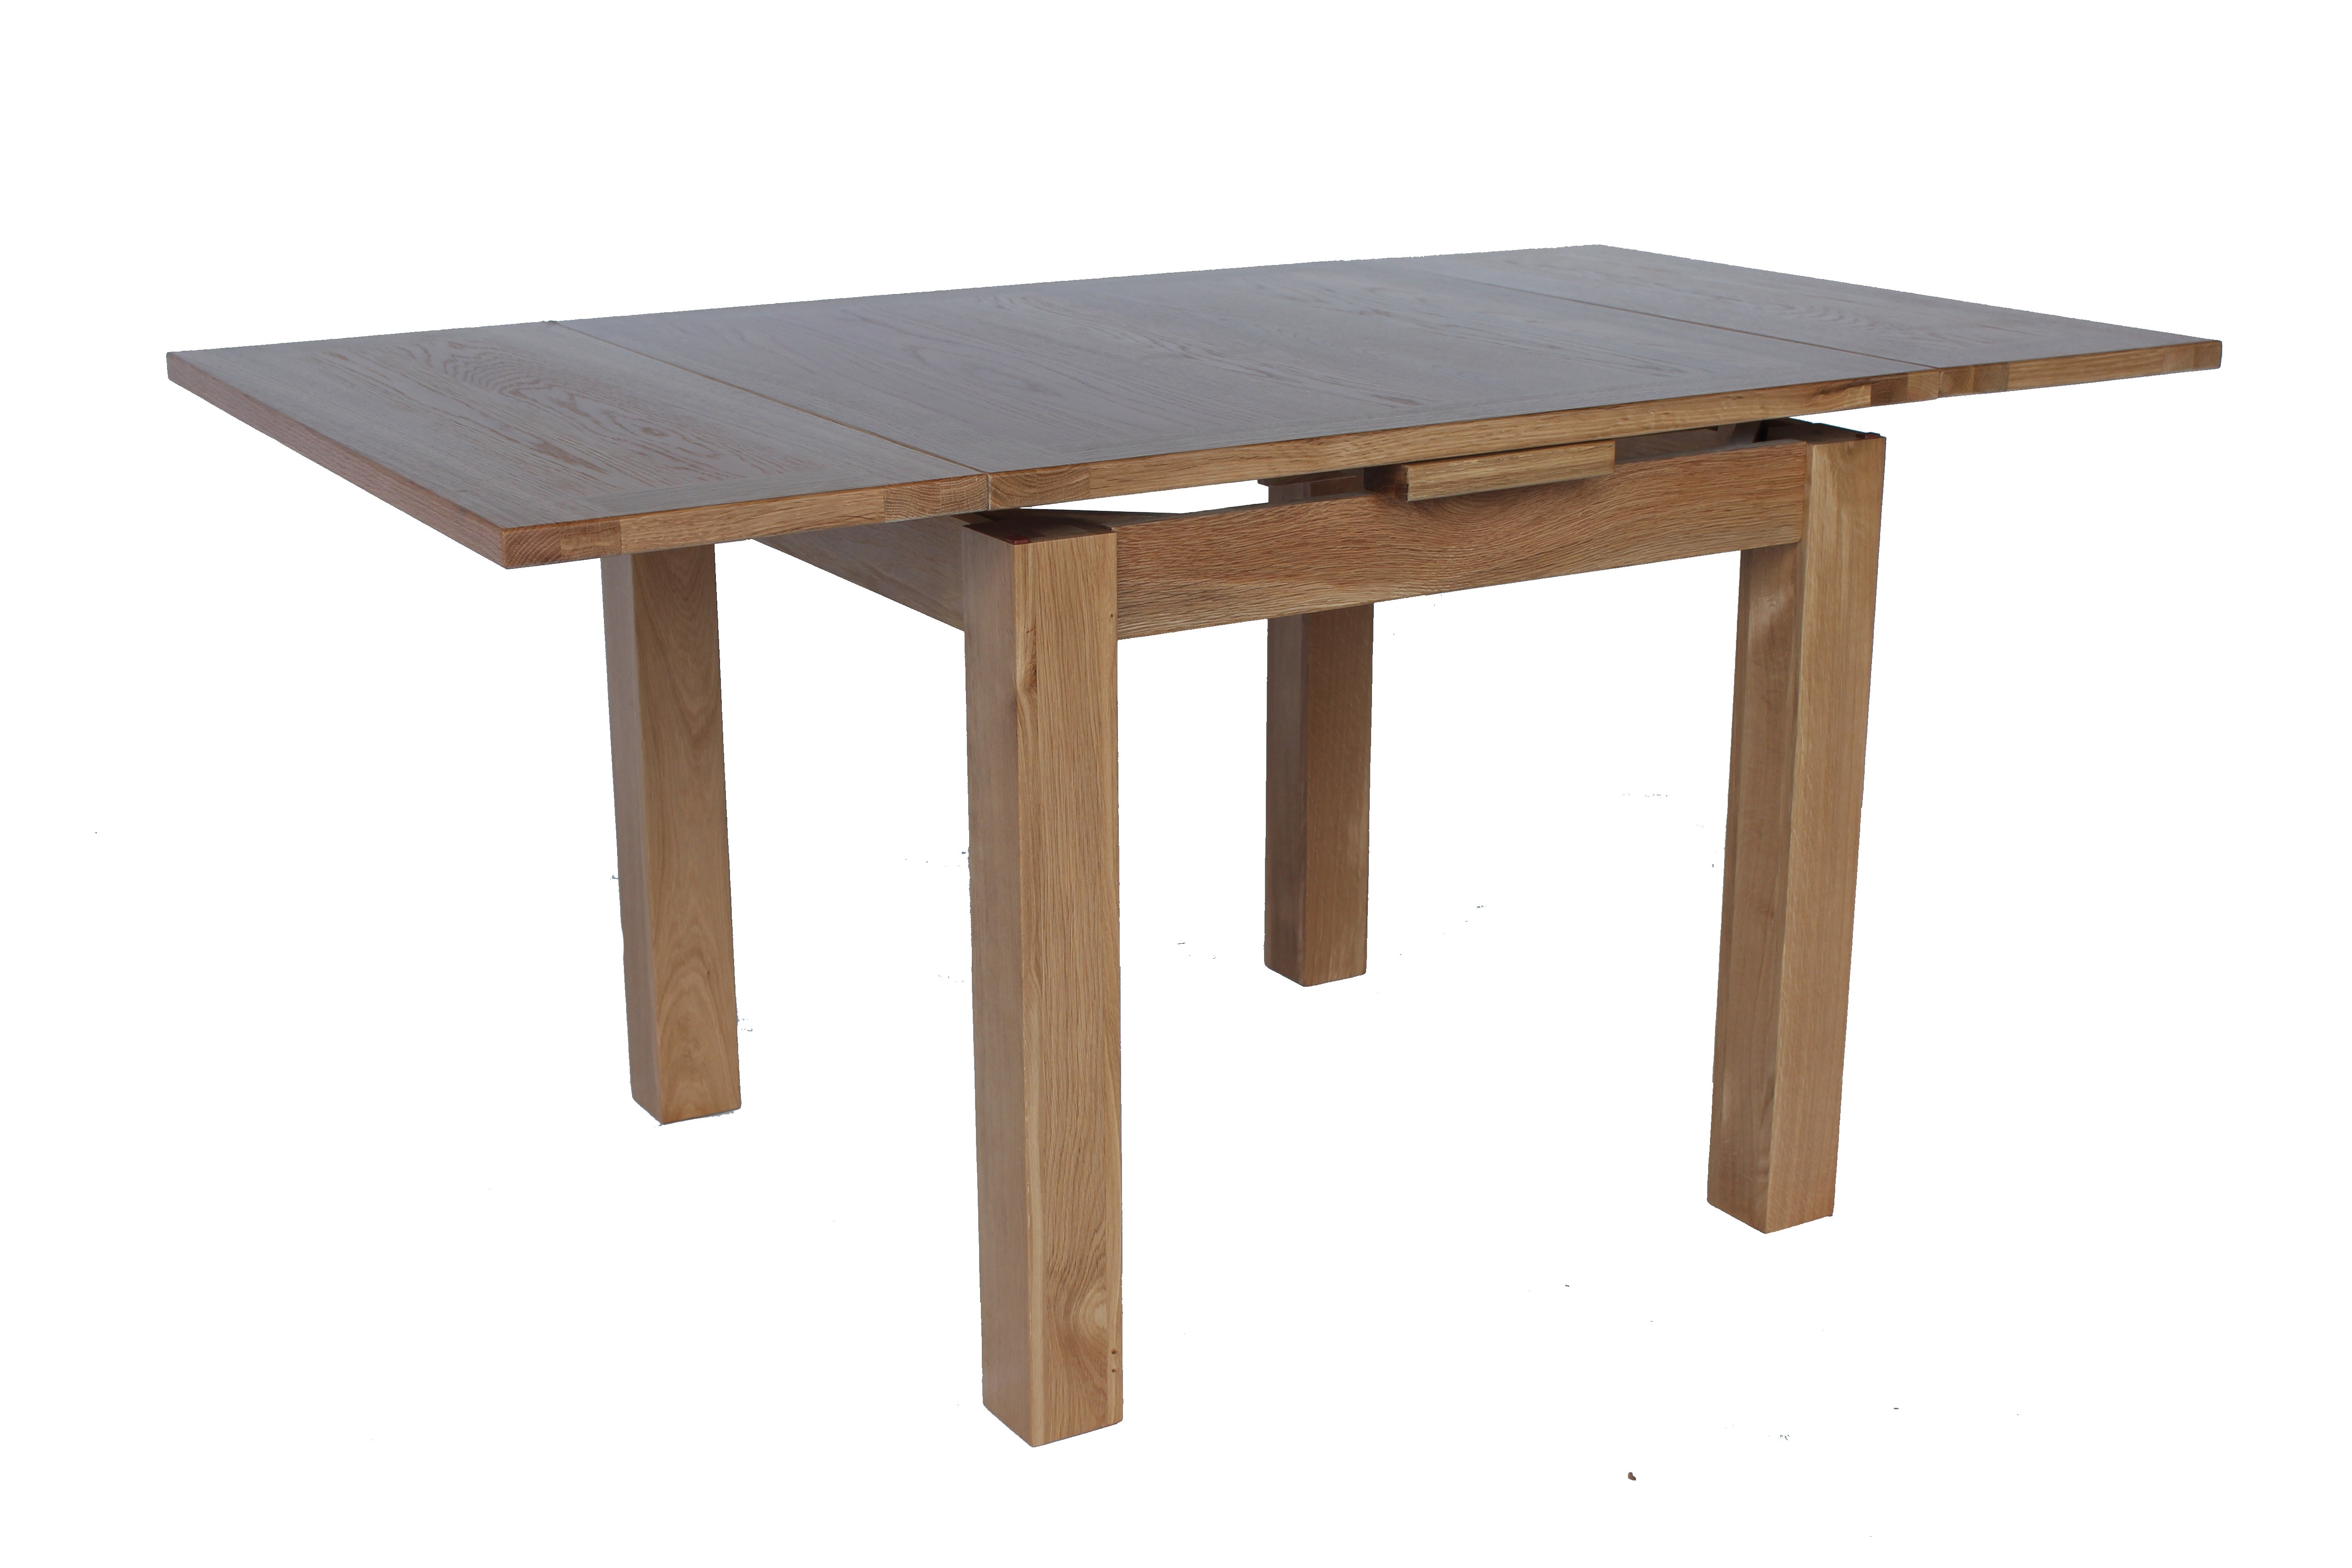 Most Popular Extendable Square Dining Tables With Regard To Loon Peak Badalamenti Square Extendable Solid Wood Dining Table (View 24 of 25)